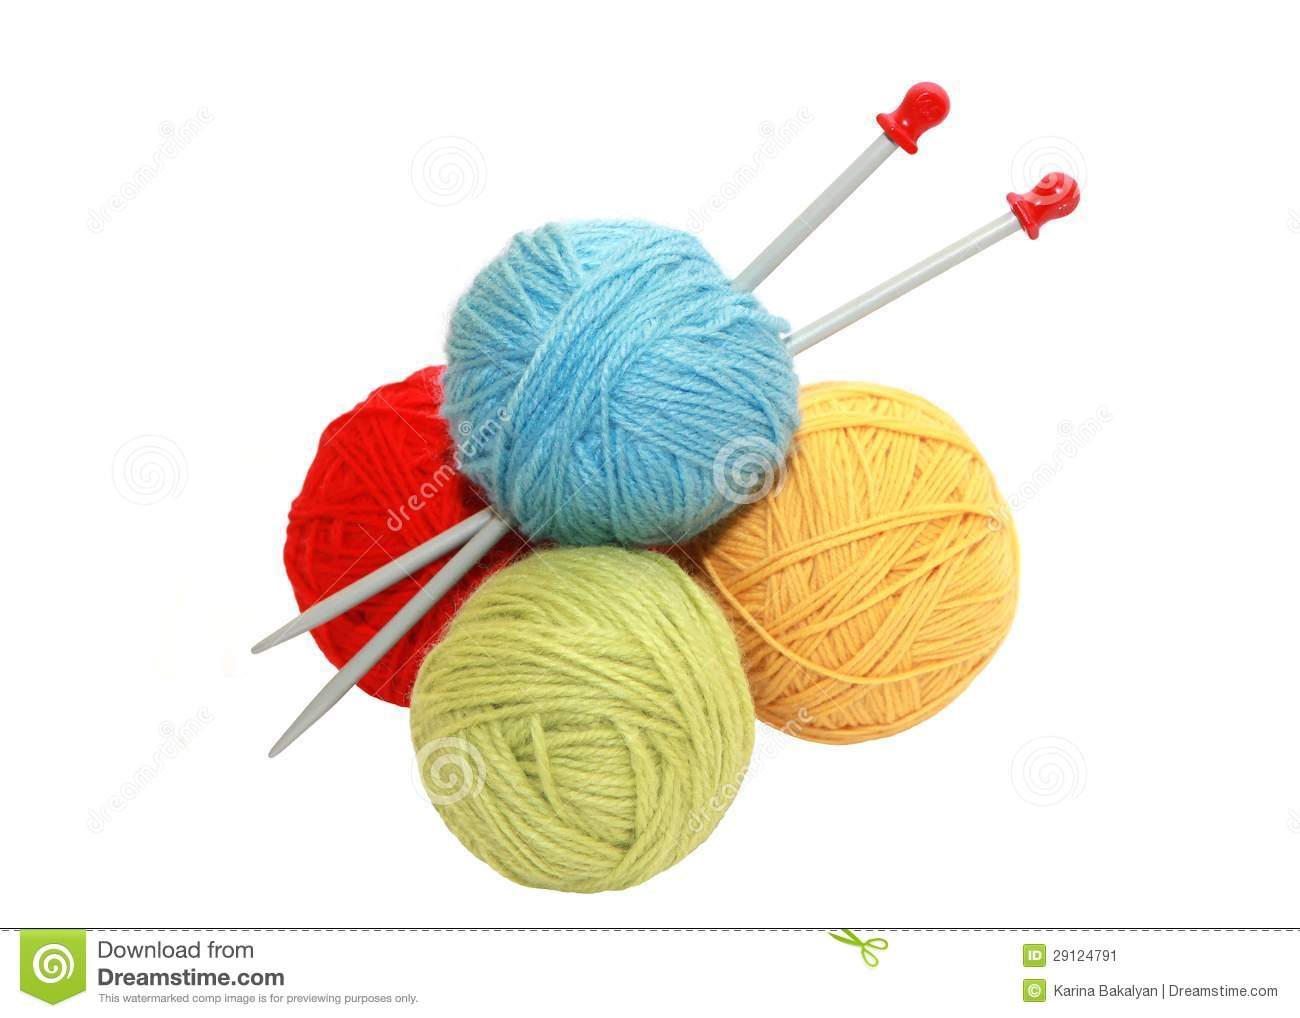 Knitting Wool And Needles : Color yarn balls and knitting needles stock image